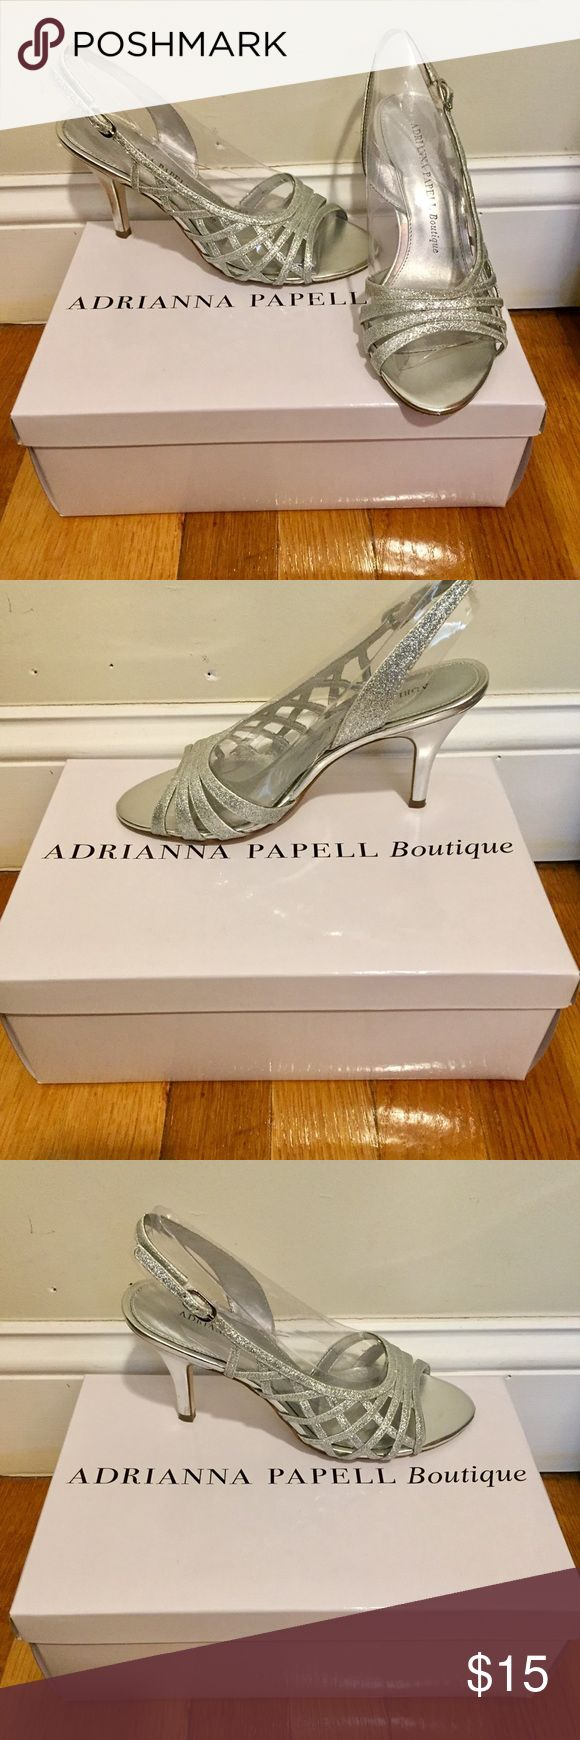 Sparkly silver heels 👠💎 Adrianna Papell Boutique silver heels! Worn for about 1 hour total to prom! Would work for prom or for a wedding or any other fancy gathering! 💎😍🎀👠🖤 Adrianna Papell Shoes Heels